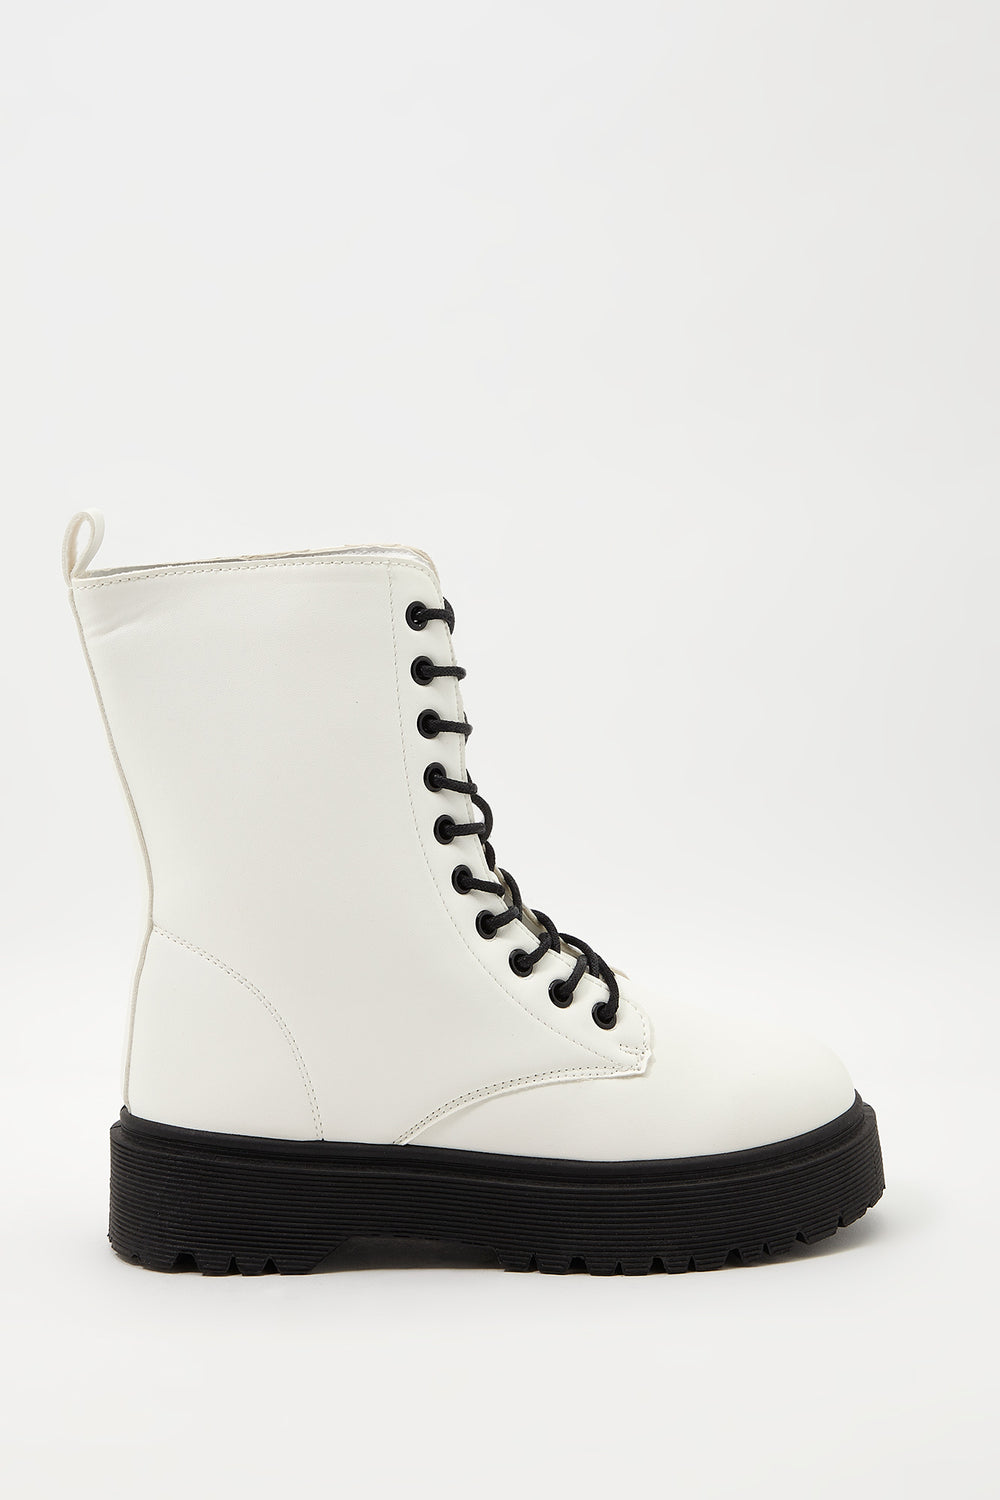 Classic Faux-Leather Combat Boot White